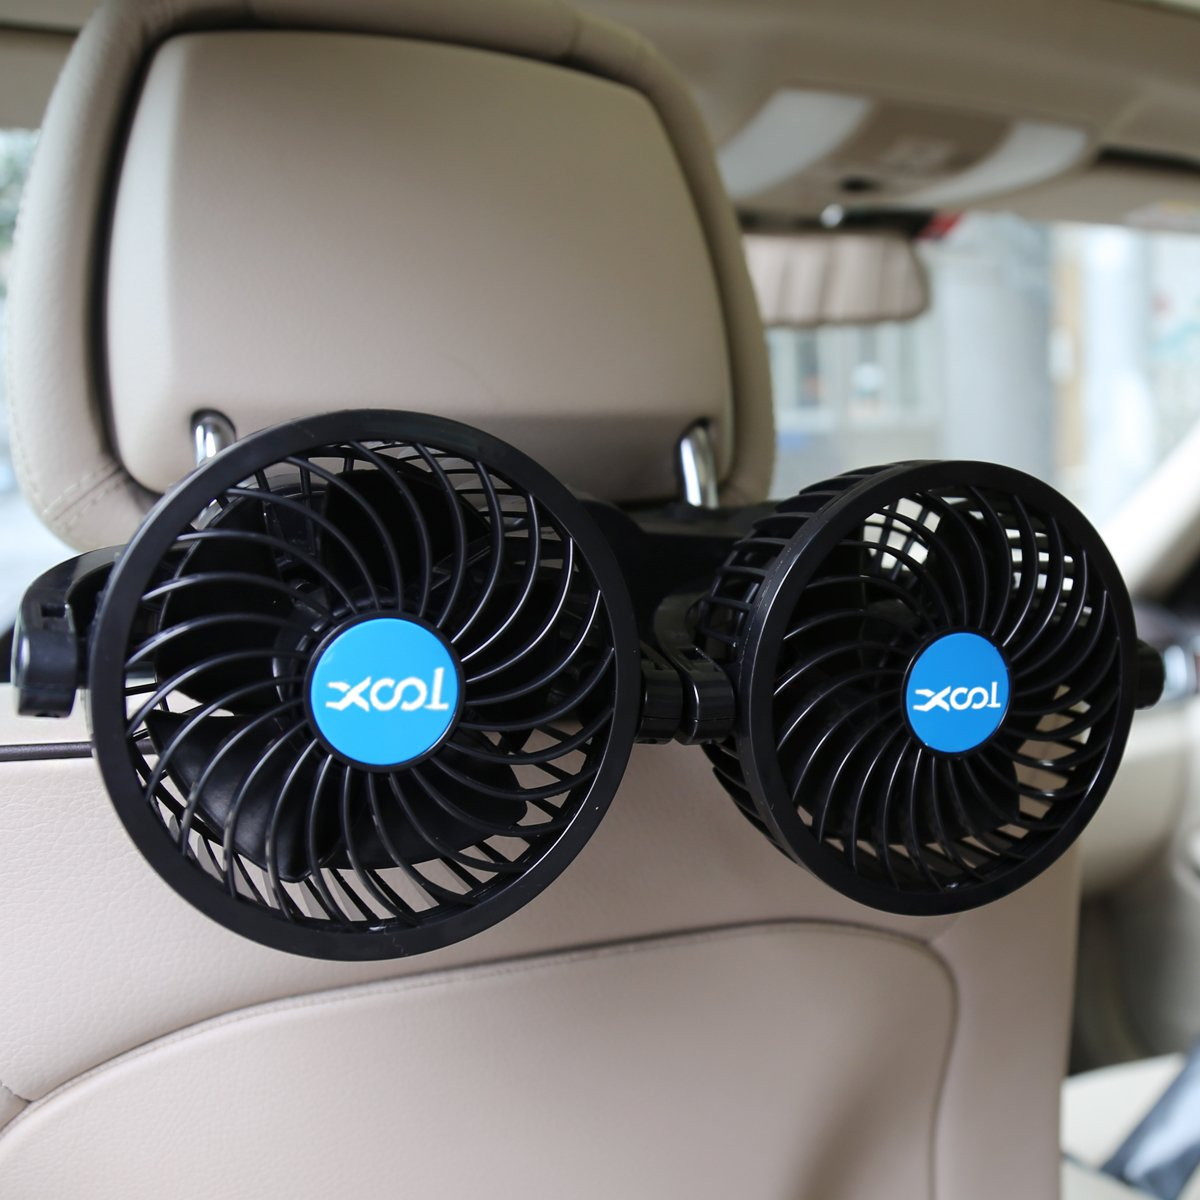 XOOL Car Fan, Electric Car Fans for Rear Seat Passenger Portable Car Seat Fan Headrest 360 Degree Rotatable Backseat Car Fan 12V Cooling Air Fan with Stepless Speed Regulation for SUV, RV, Vehicles by XOOL